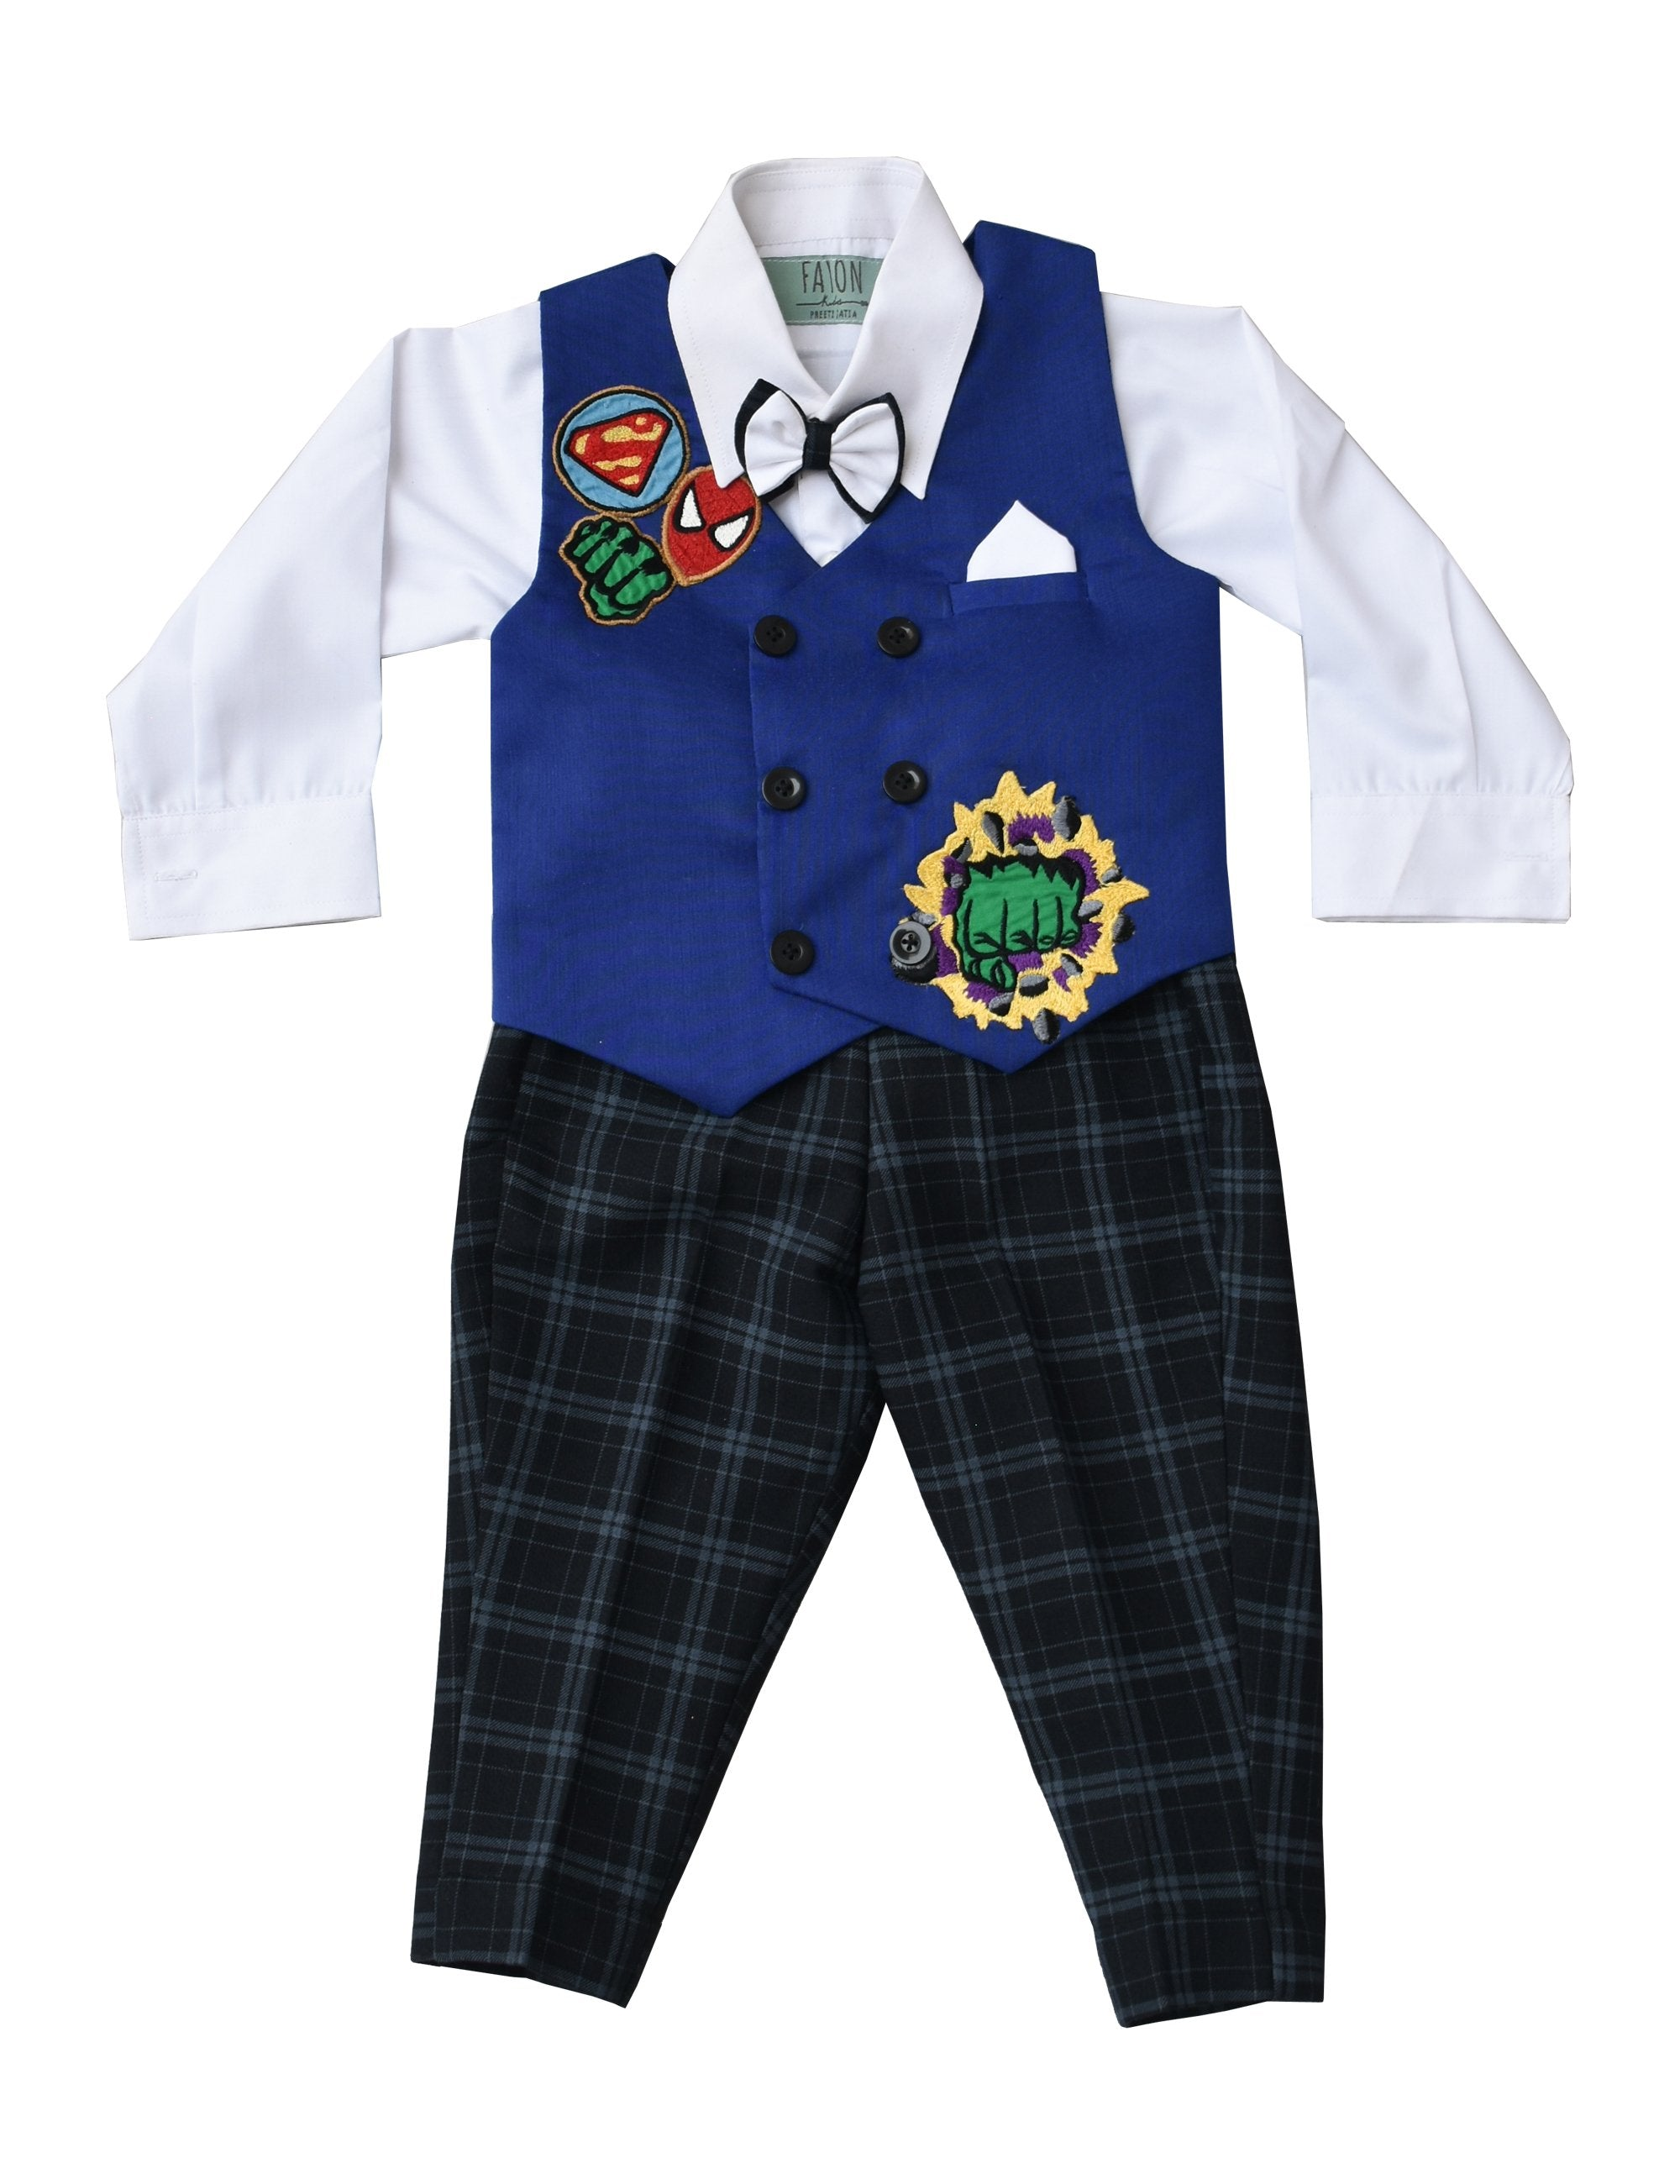 White Shirt with Black Check Pant & Hulk Print Waist Coat